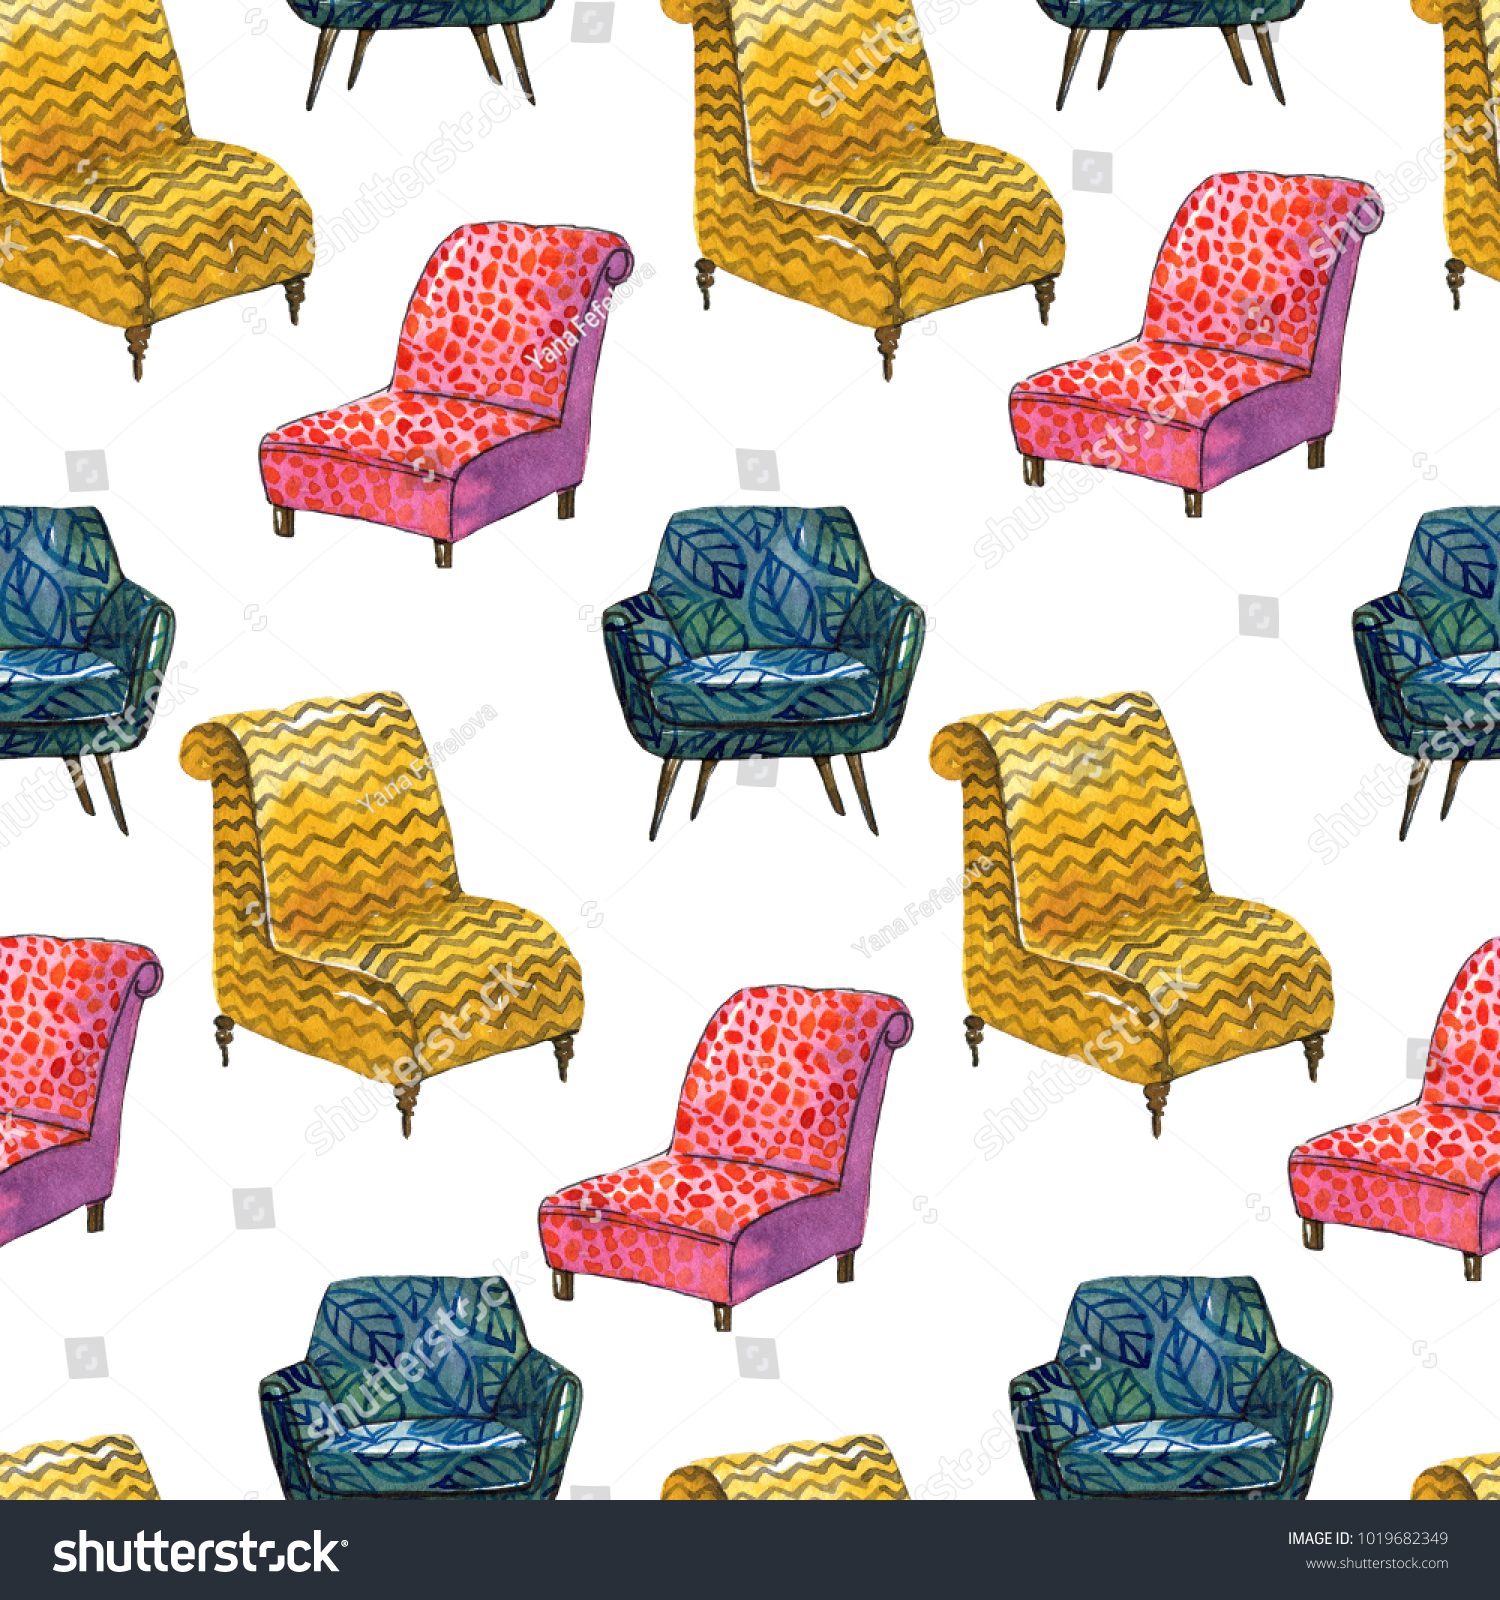 Colorful Pattern Different Chairs Watercolor Style Stock ...